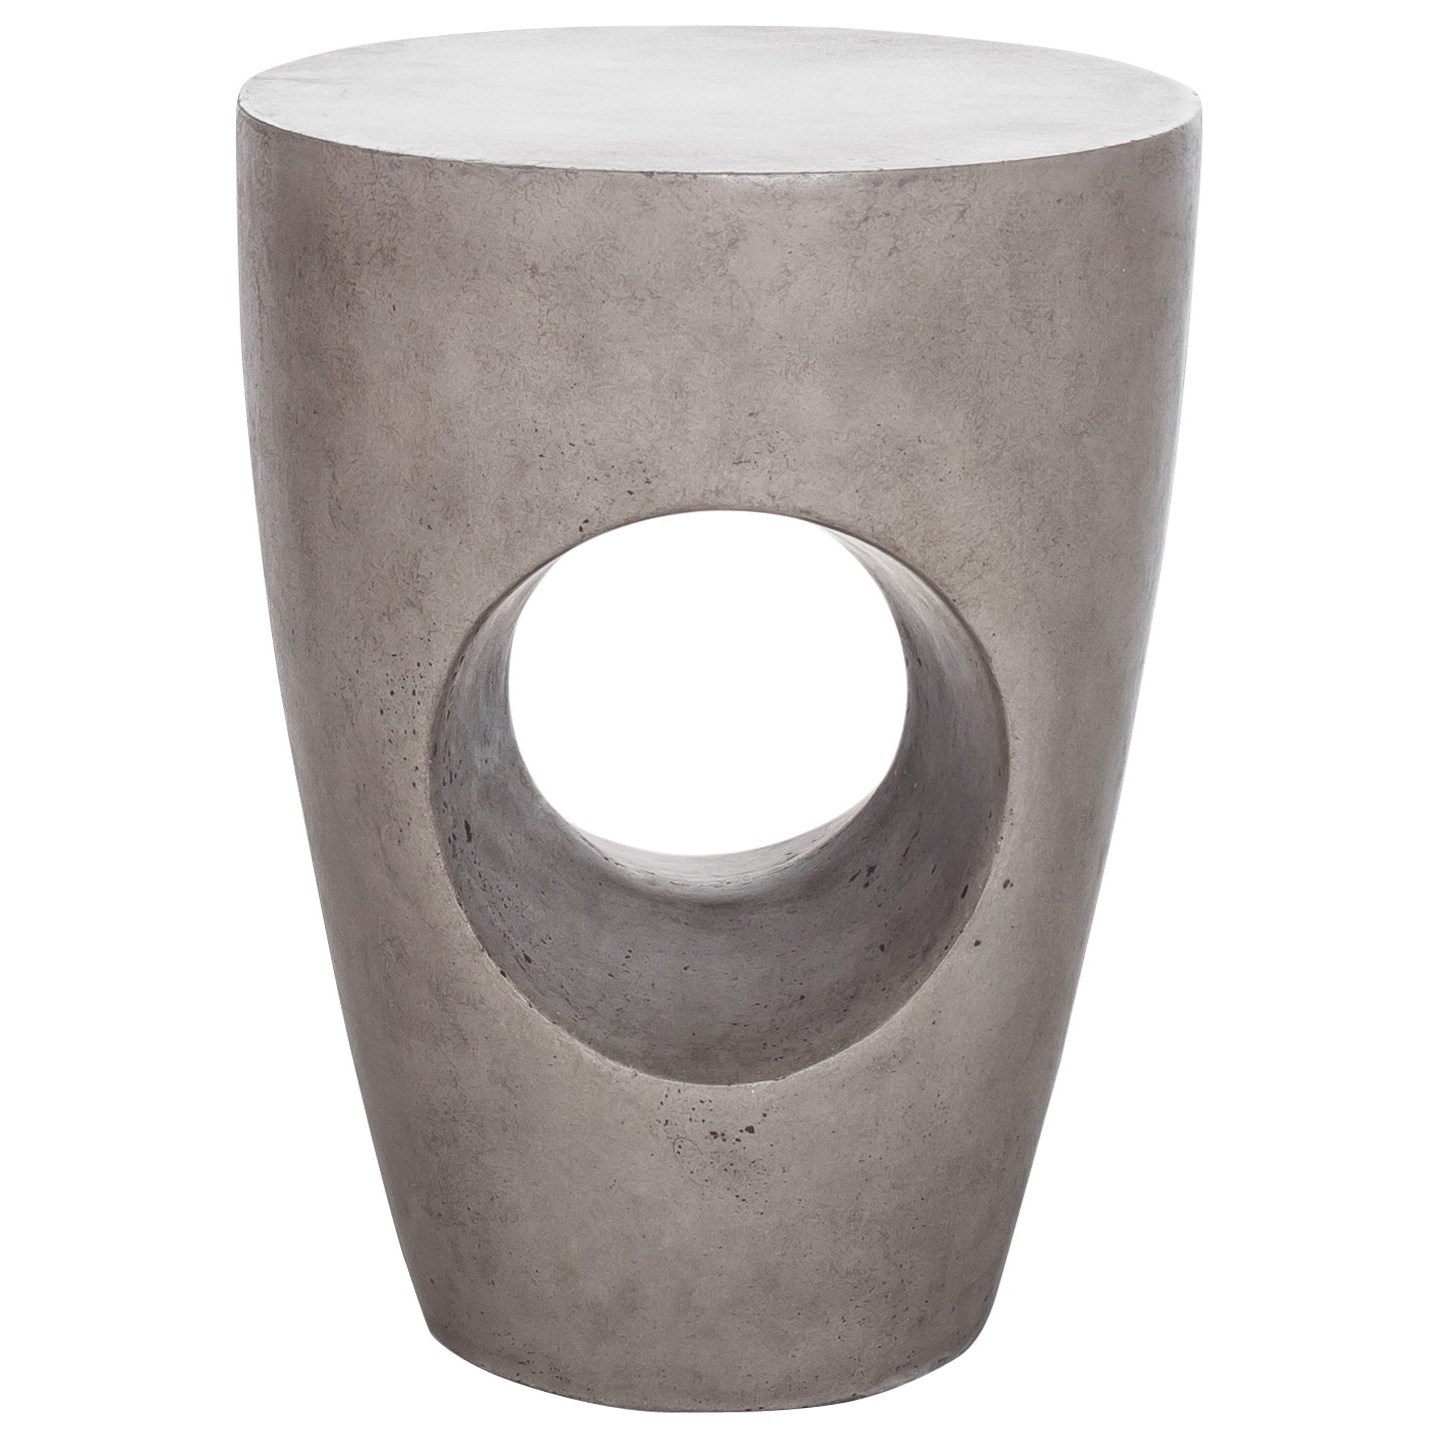 Aylard Natural Concrete Outdoor Stool by Moe's Home Collection at Stoney Creek Furniture